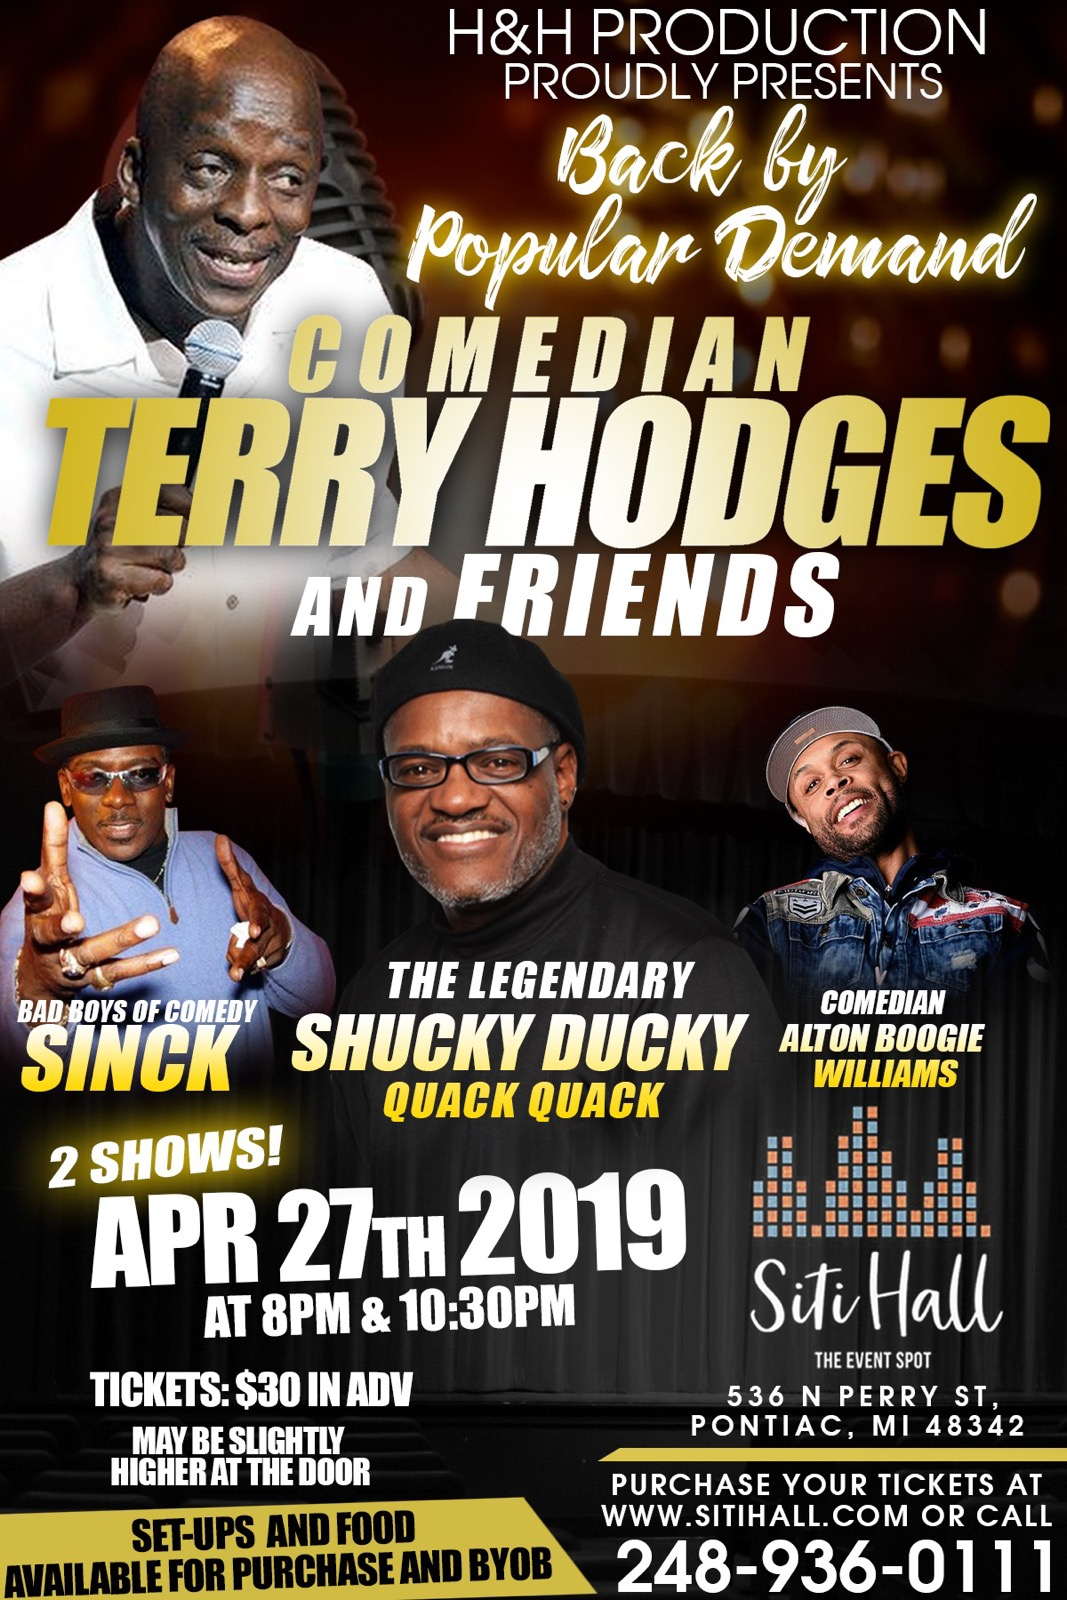 Terry Hodges and Friends of Comedy